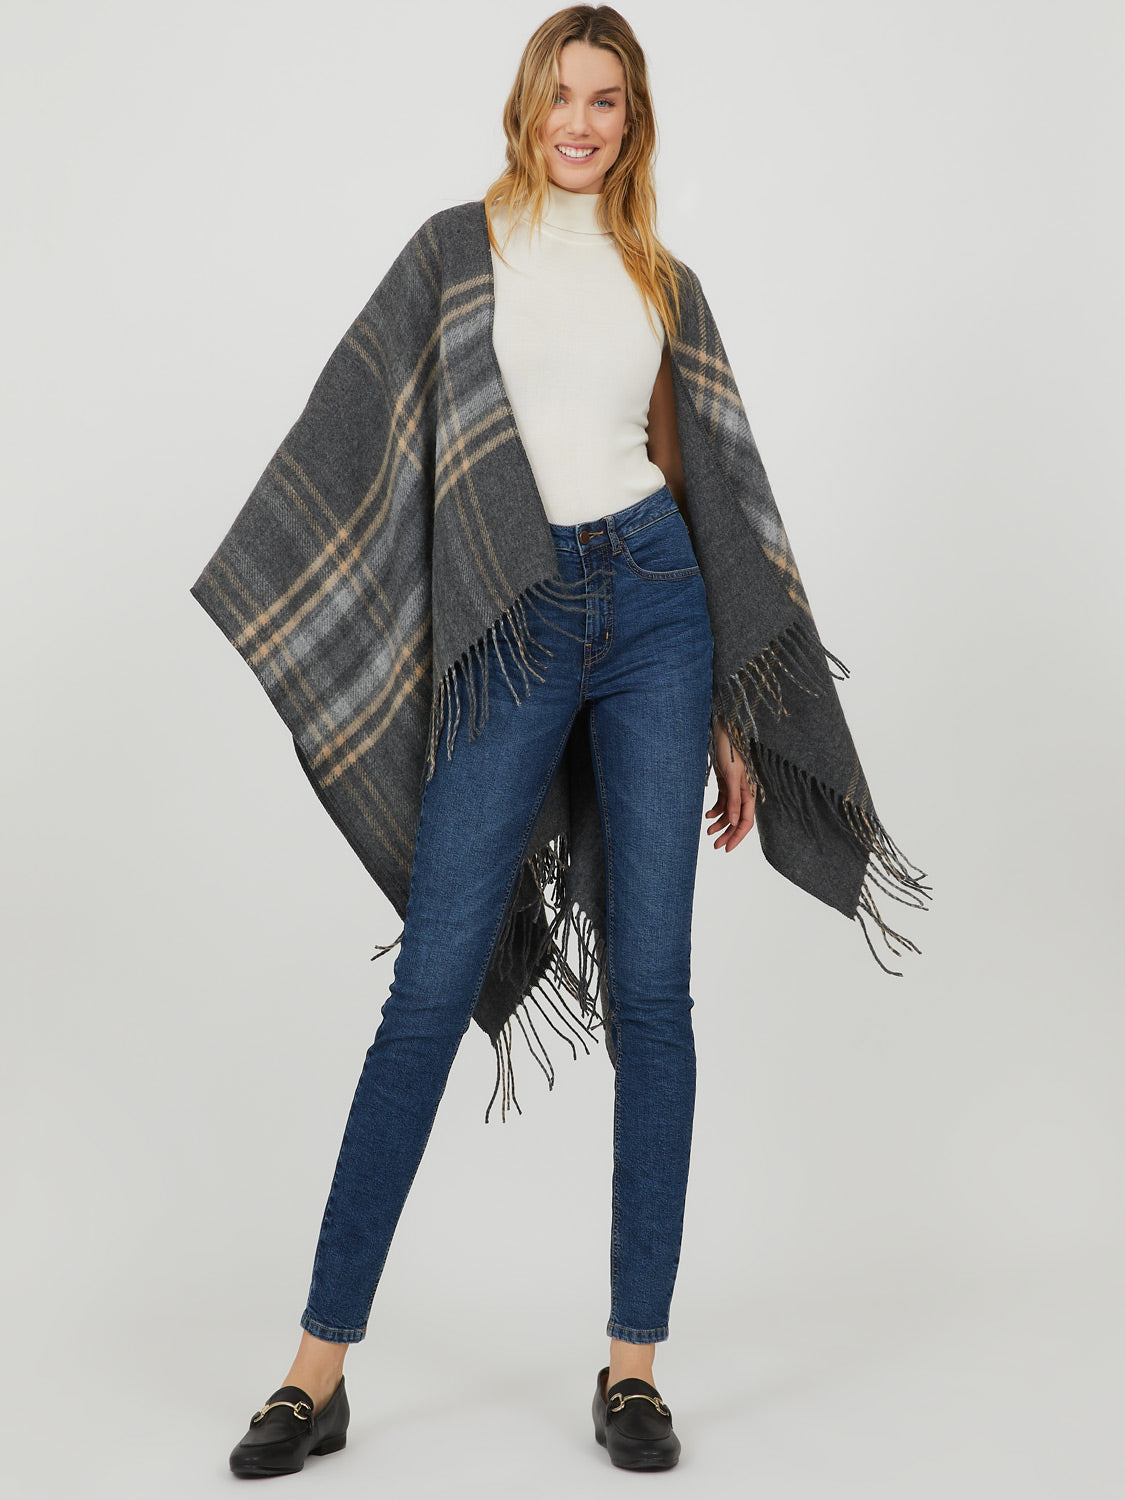 Glen Plaid Fringed Cape